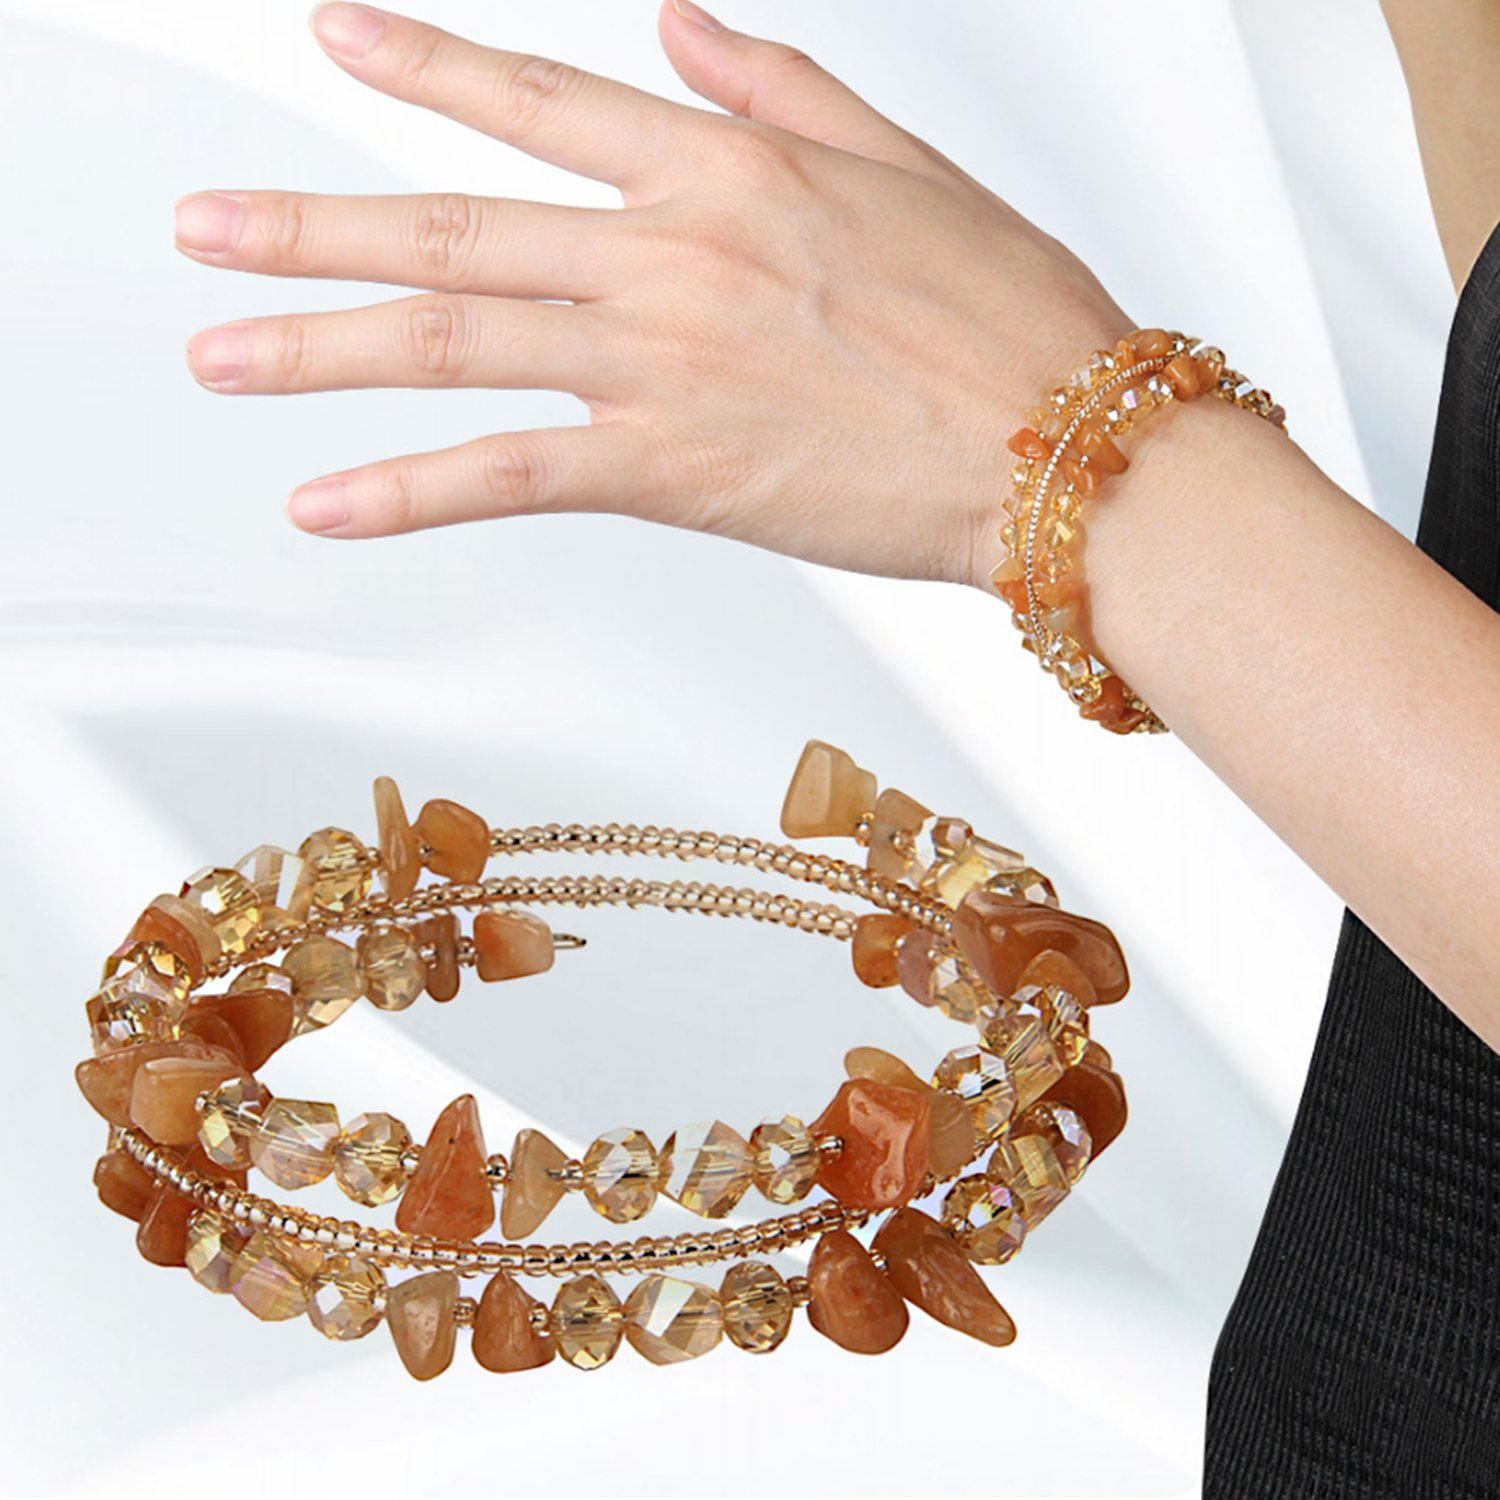 Natural Stone Crystal Bracelet for Women, Novelty Women's Charm Zirconia Bracelets Irregular Chips Beads Fashion Chains Flexible Wristband Bangle For Mothers Day Gifts, Valentine's Day - Citrine